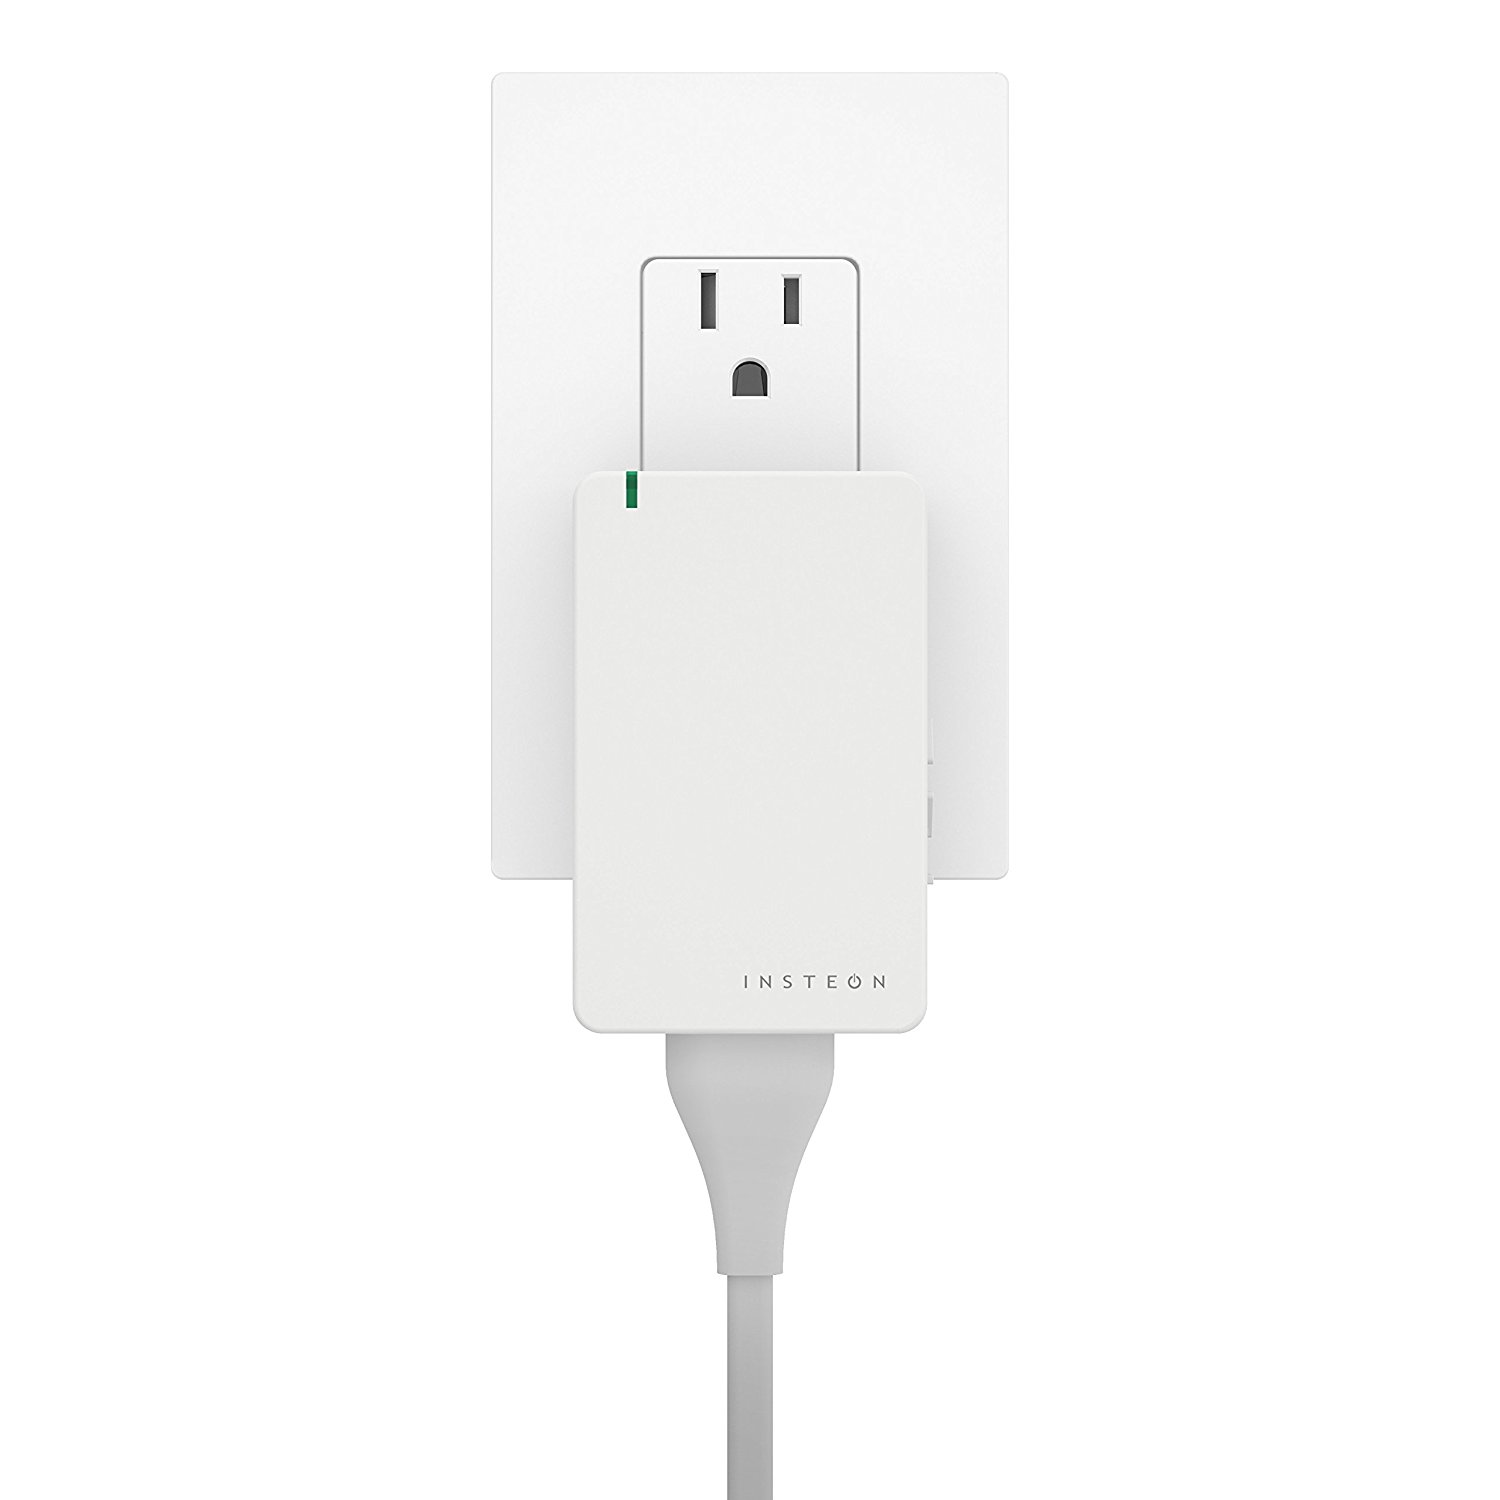 Insteon Smart Home Plug